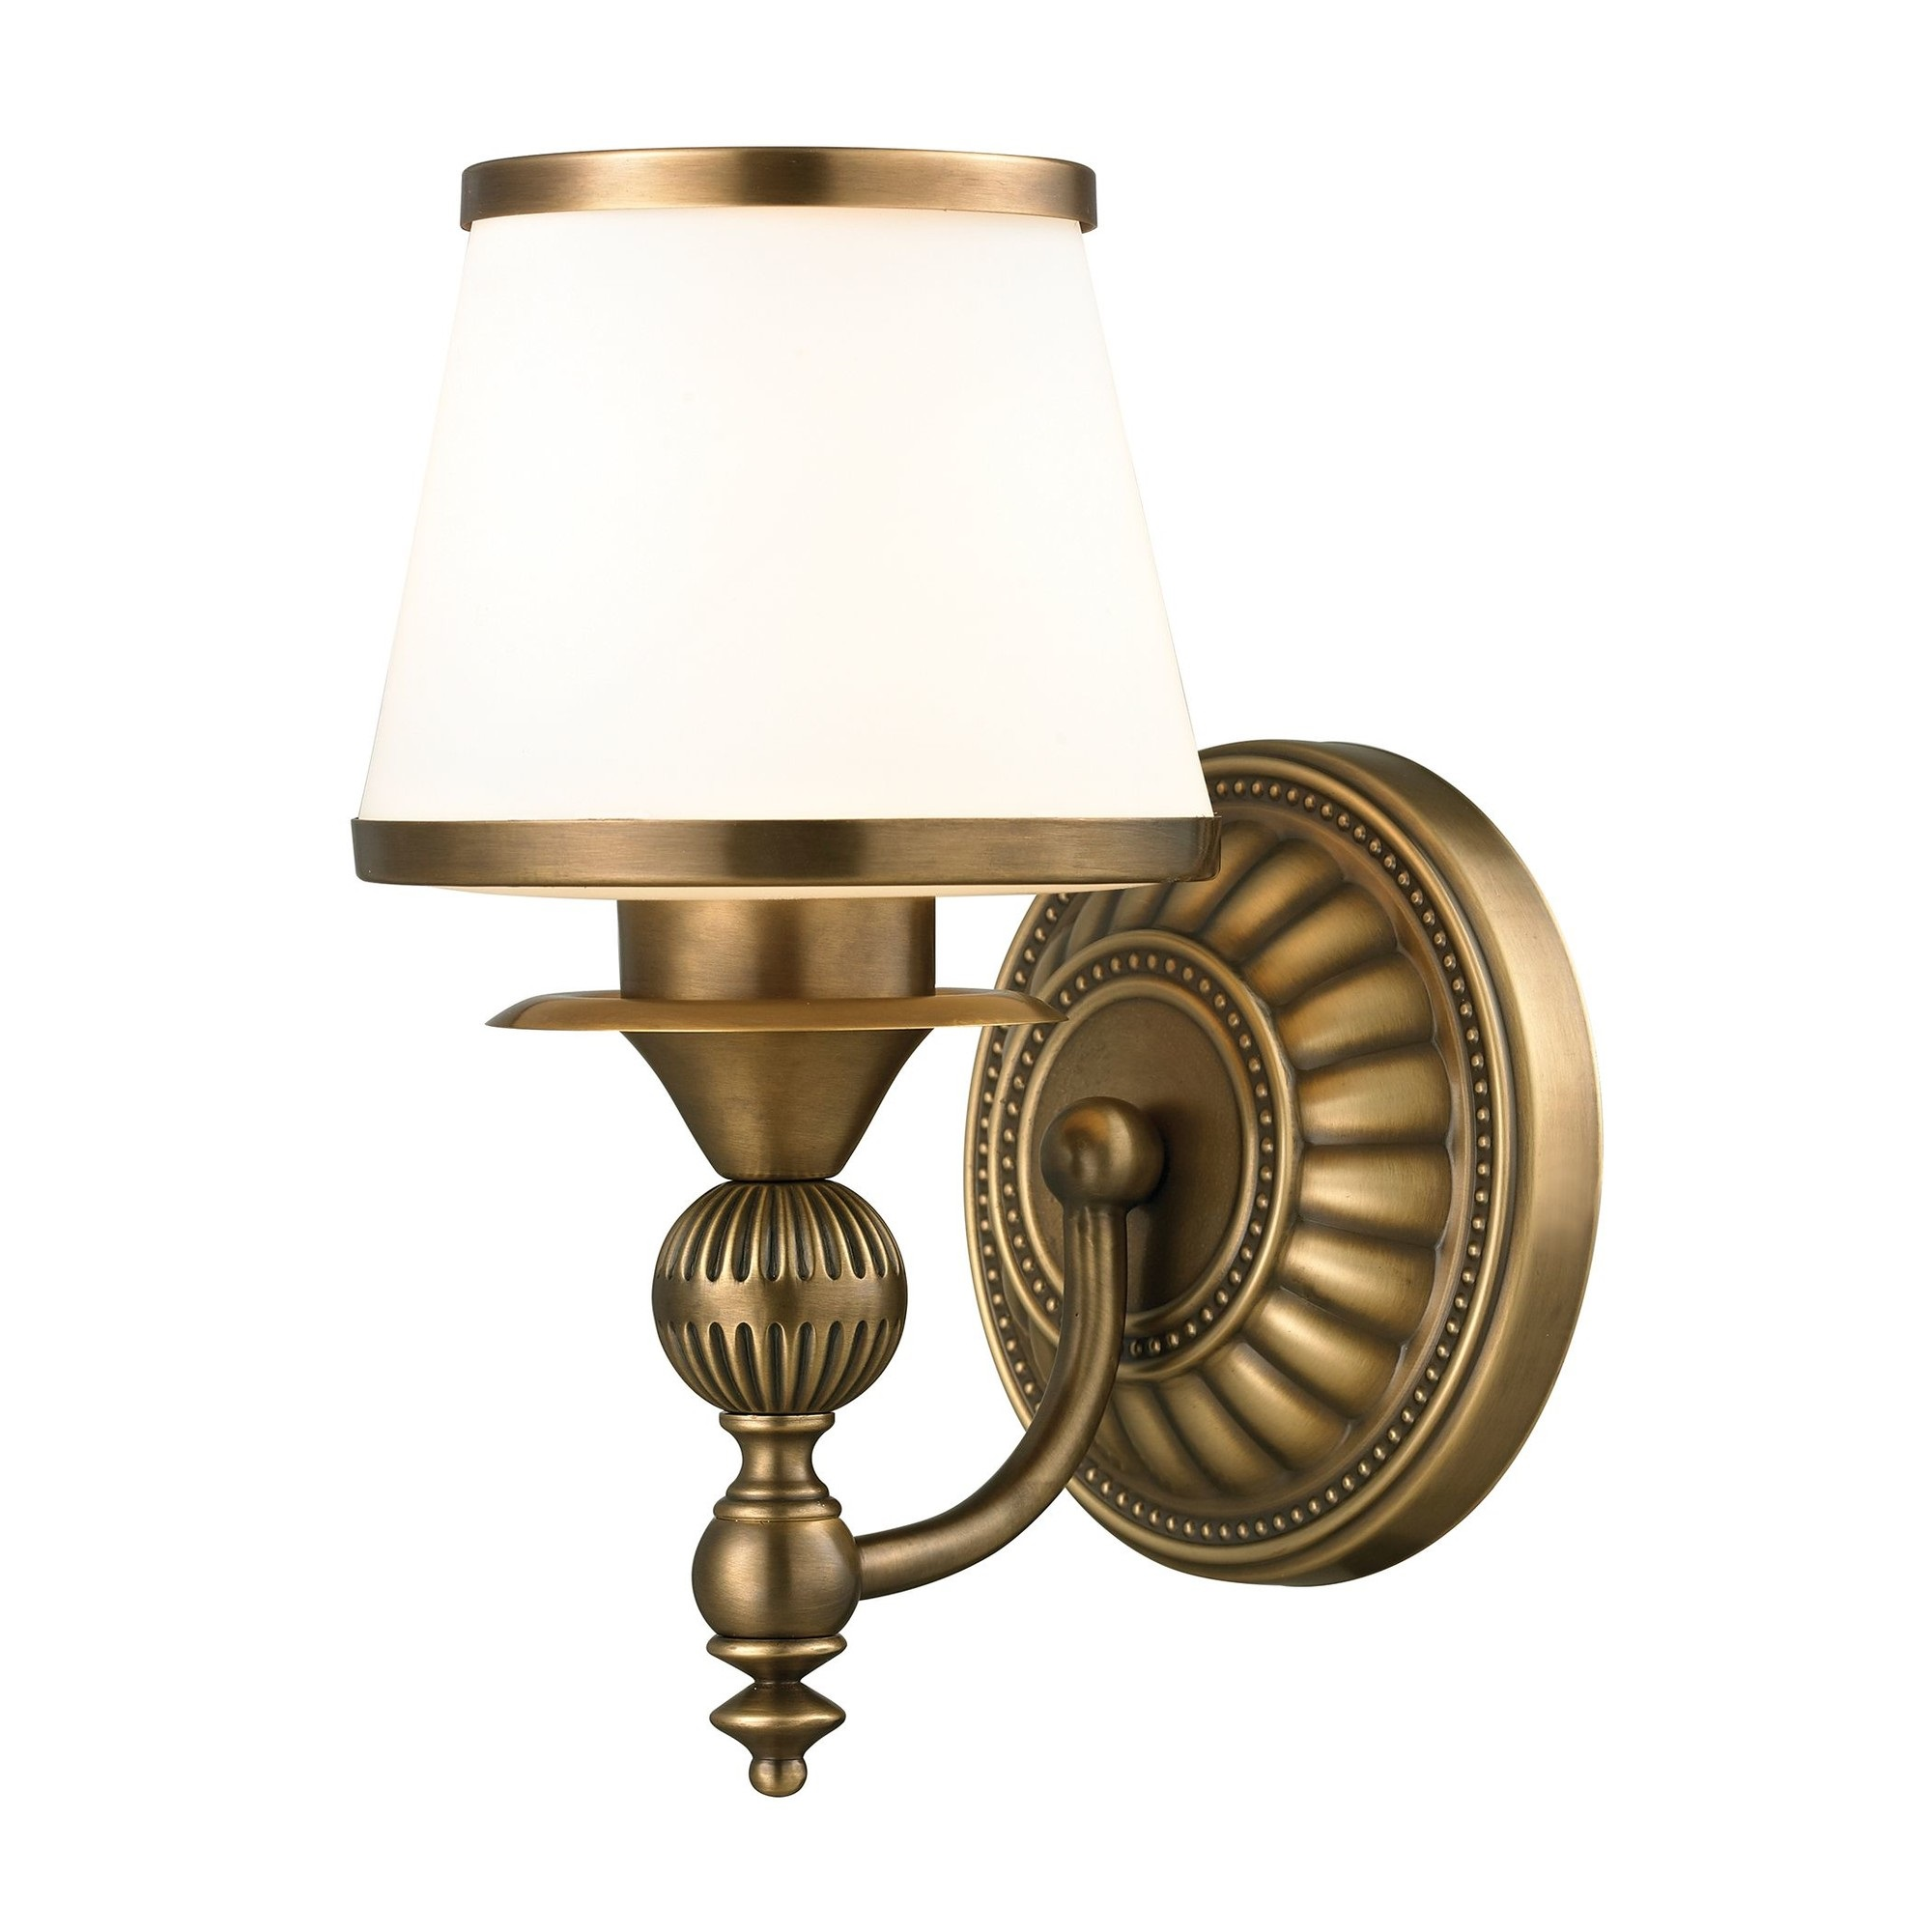 Bathroom Vanity Lights Brass: Elk Lighting Smithfield 1 Light Bath Vanity Light In Aged